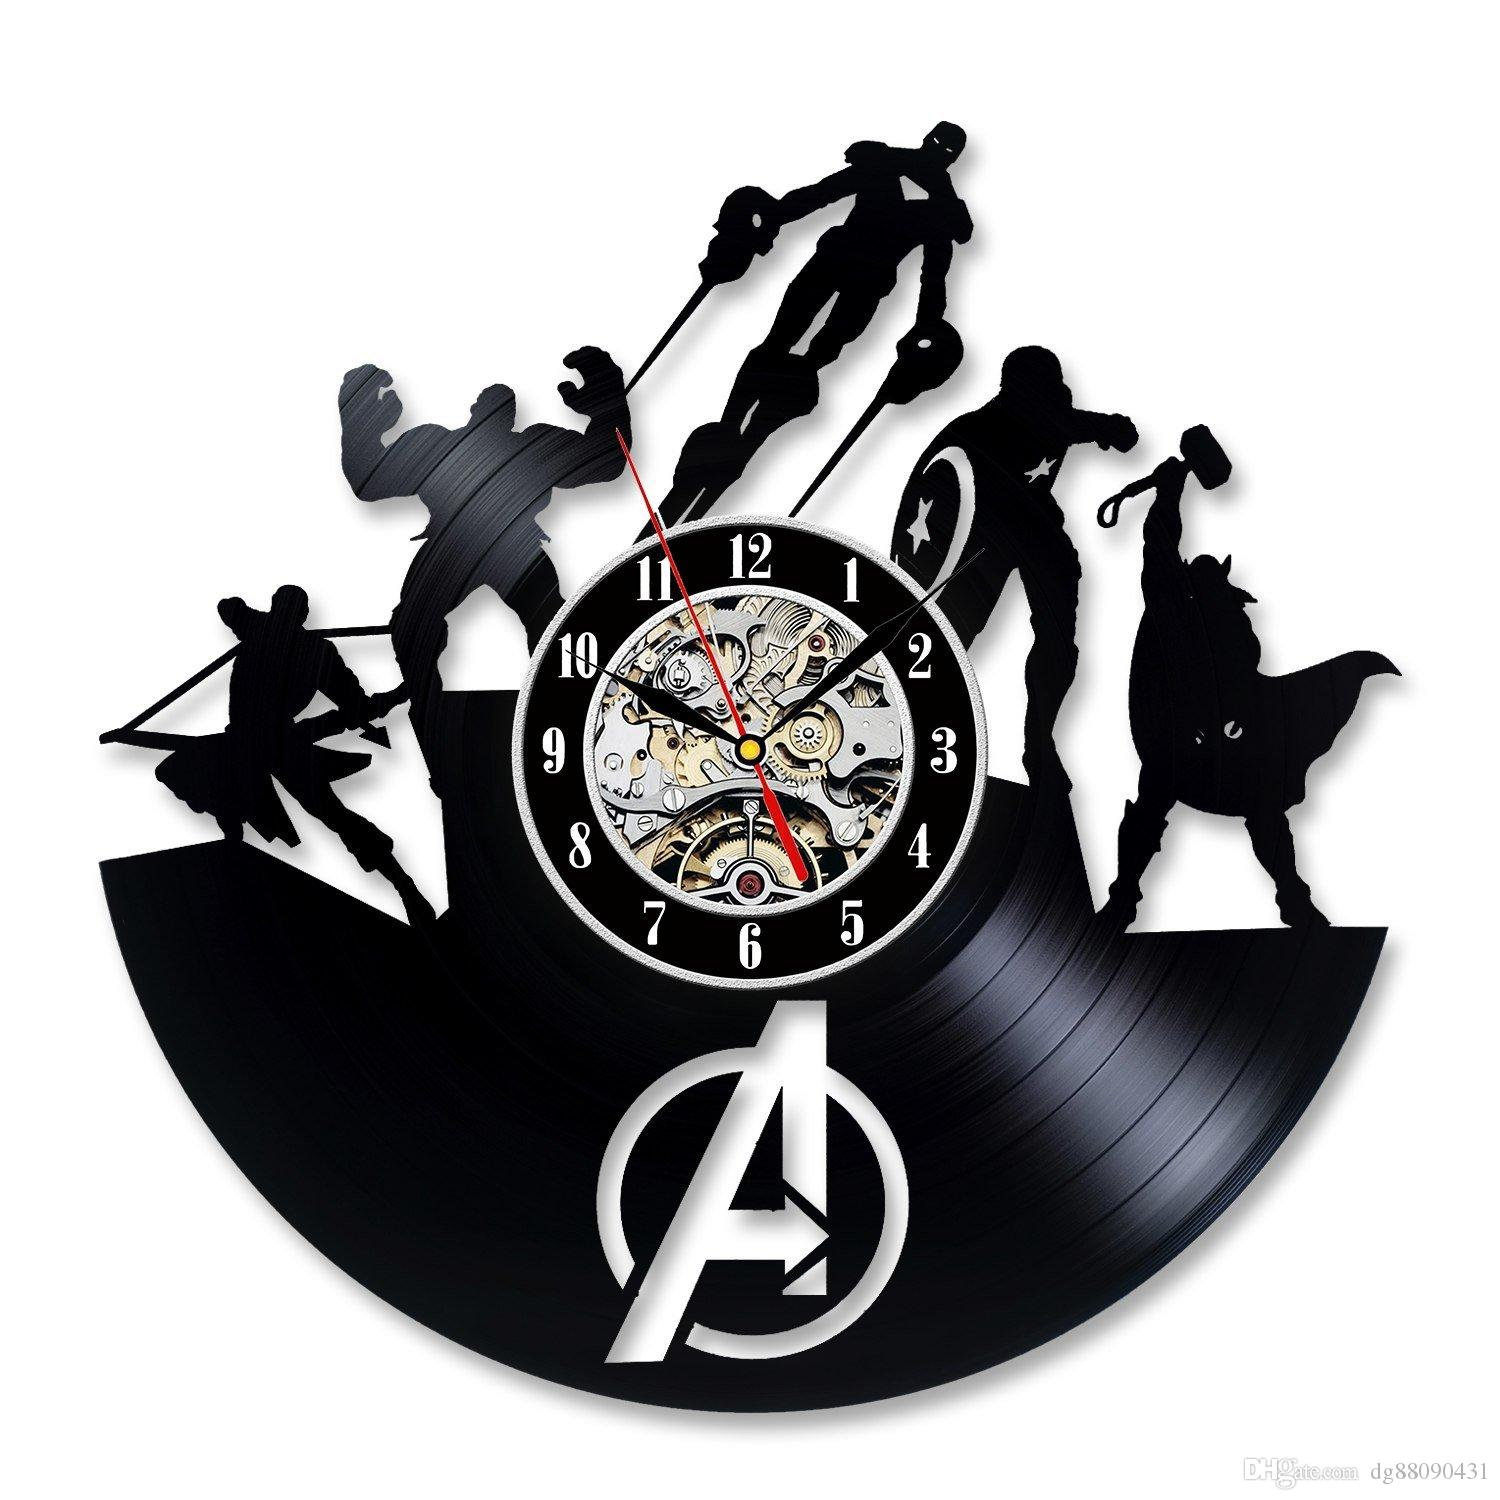 Cool Vinyl Record Wall Clock Christmas Gift For Avengers